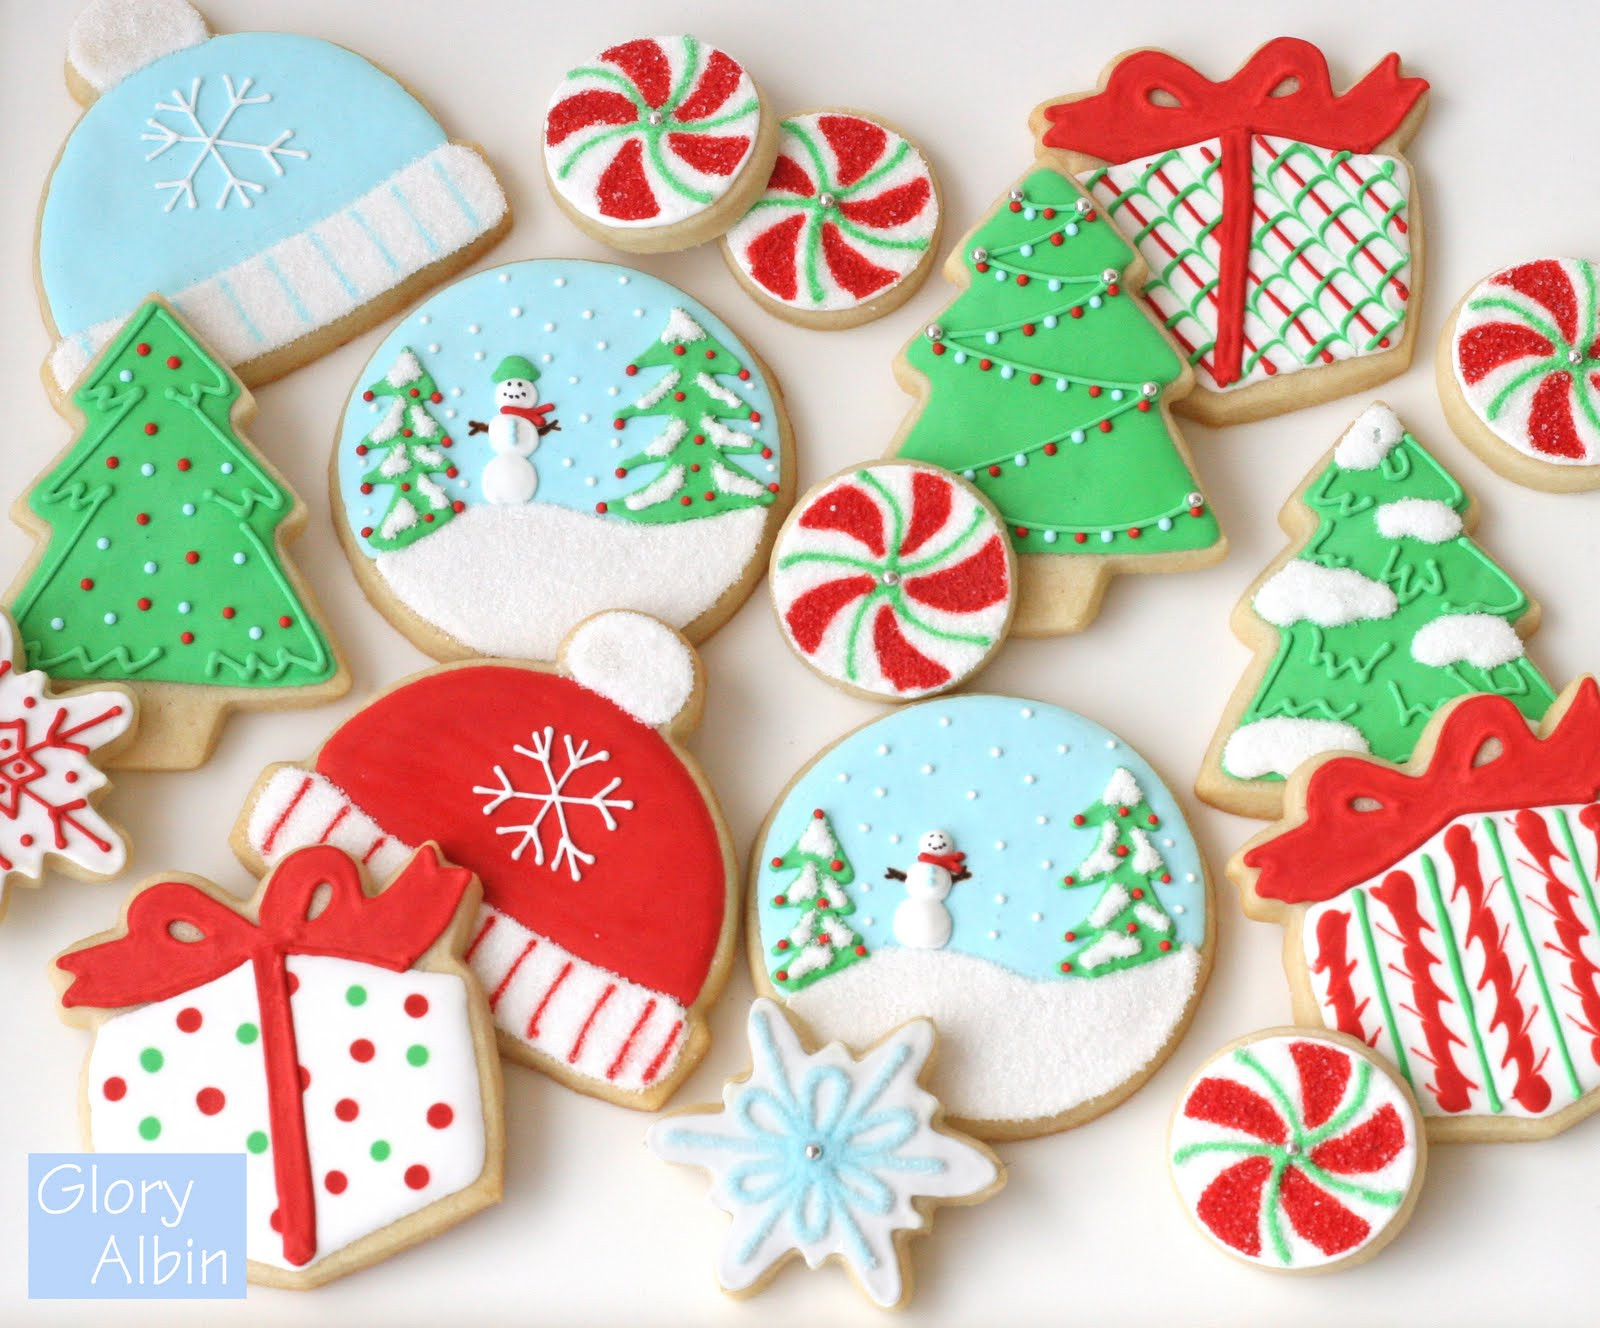 Decorating Christmas Cookies With Royal Icing  Decorating Sugar Cookies with Royal Icing – Glorious Treats